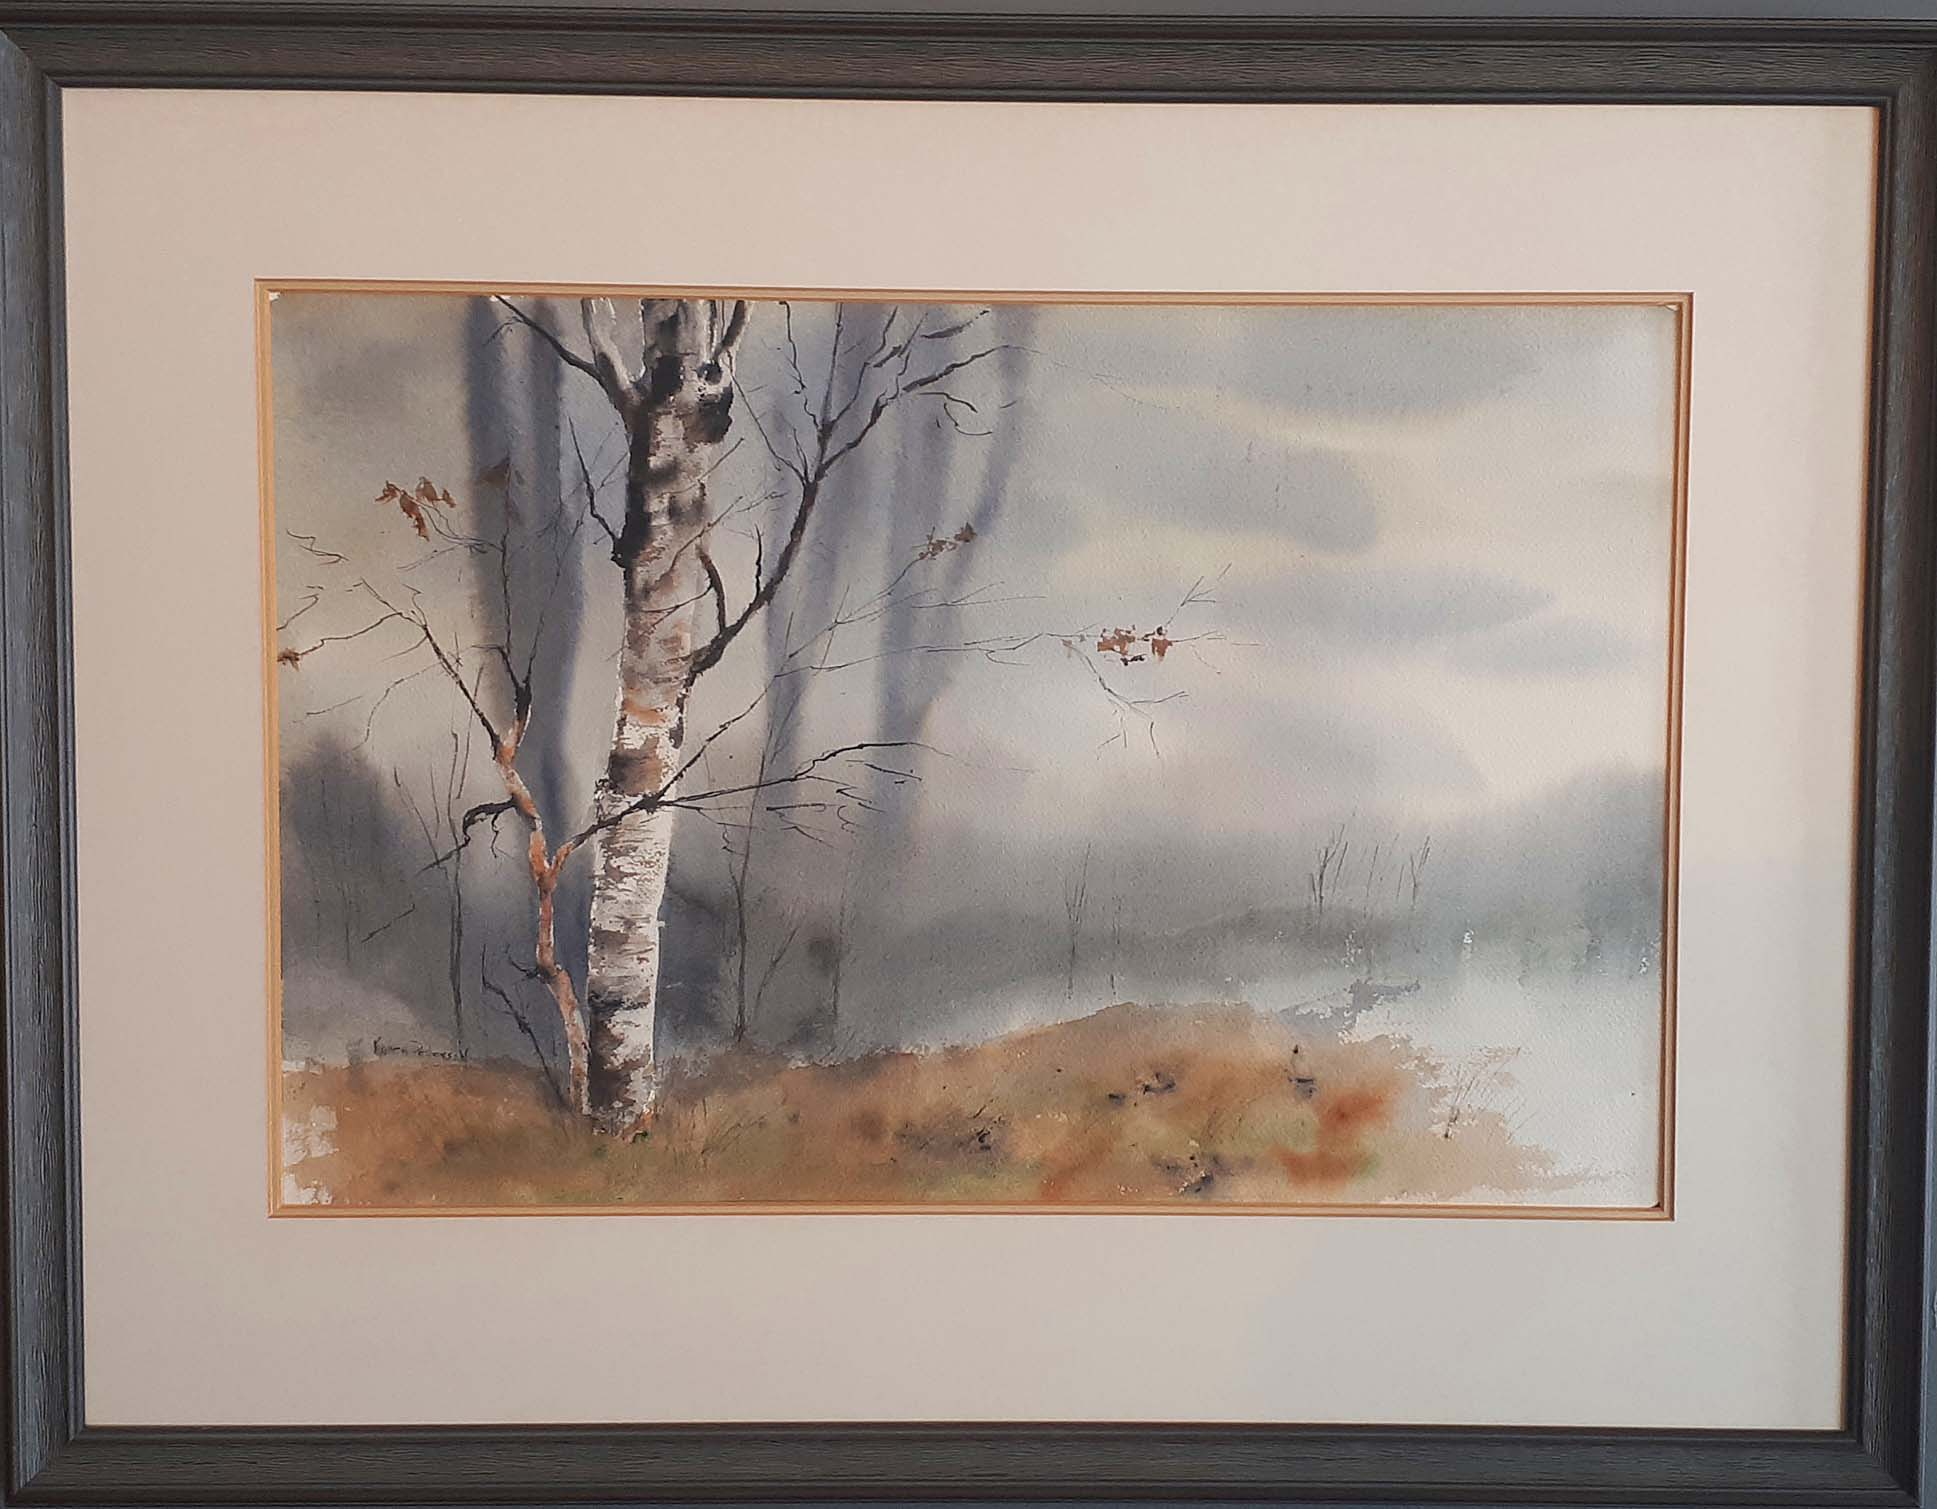 Karen Pederson, Alberta, Watercolour, Size: 28 x 22, Price: 275.00